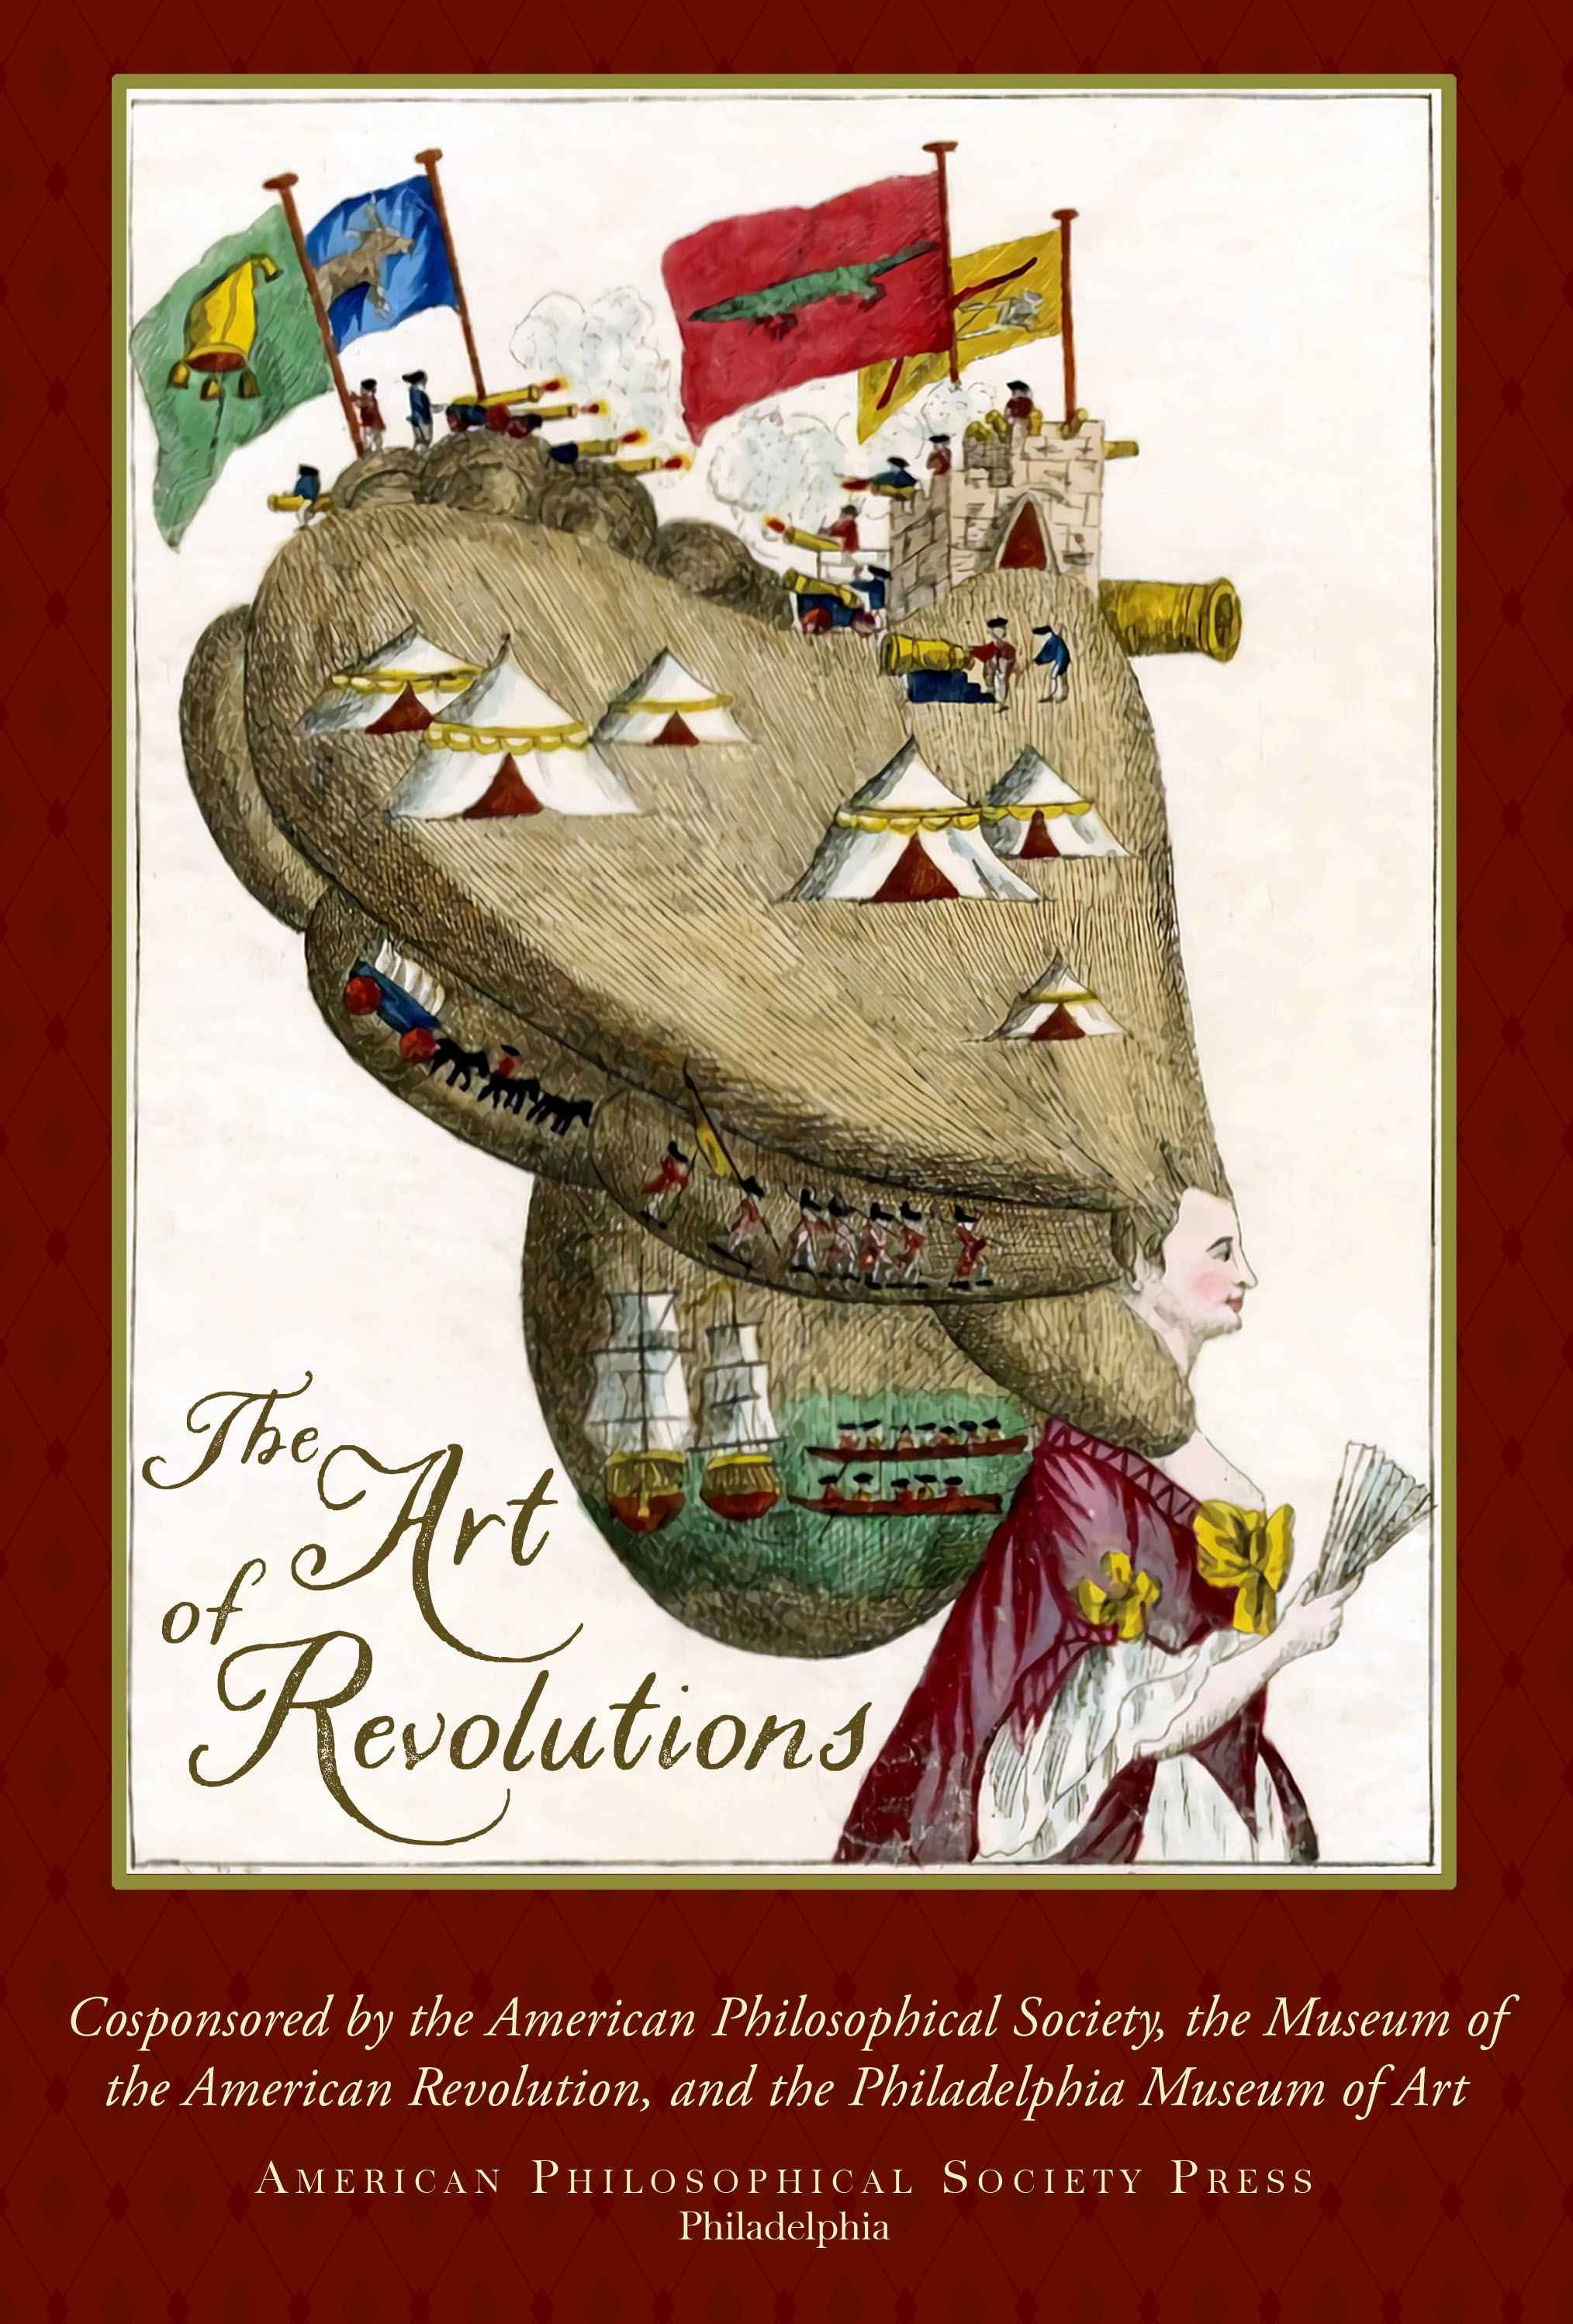 The Art of Revolutions